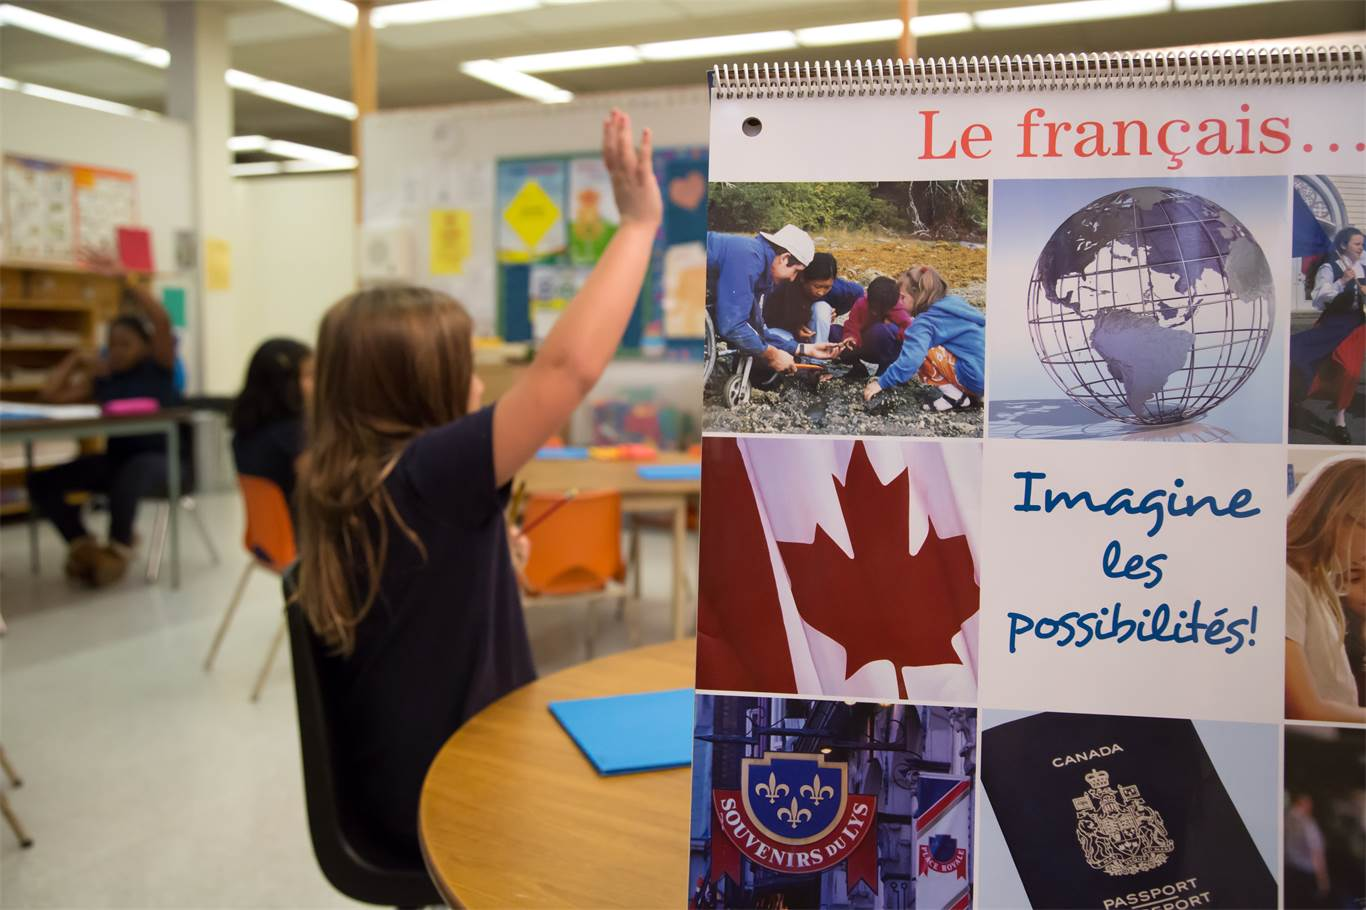 Overview of the Early French Immersion Program